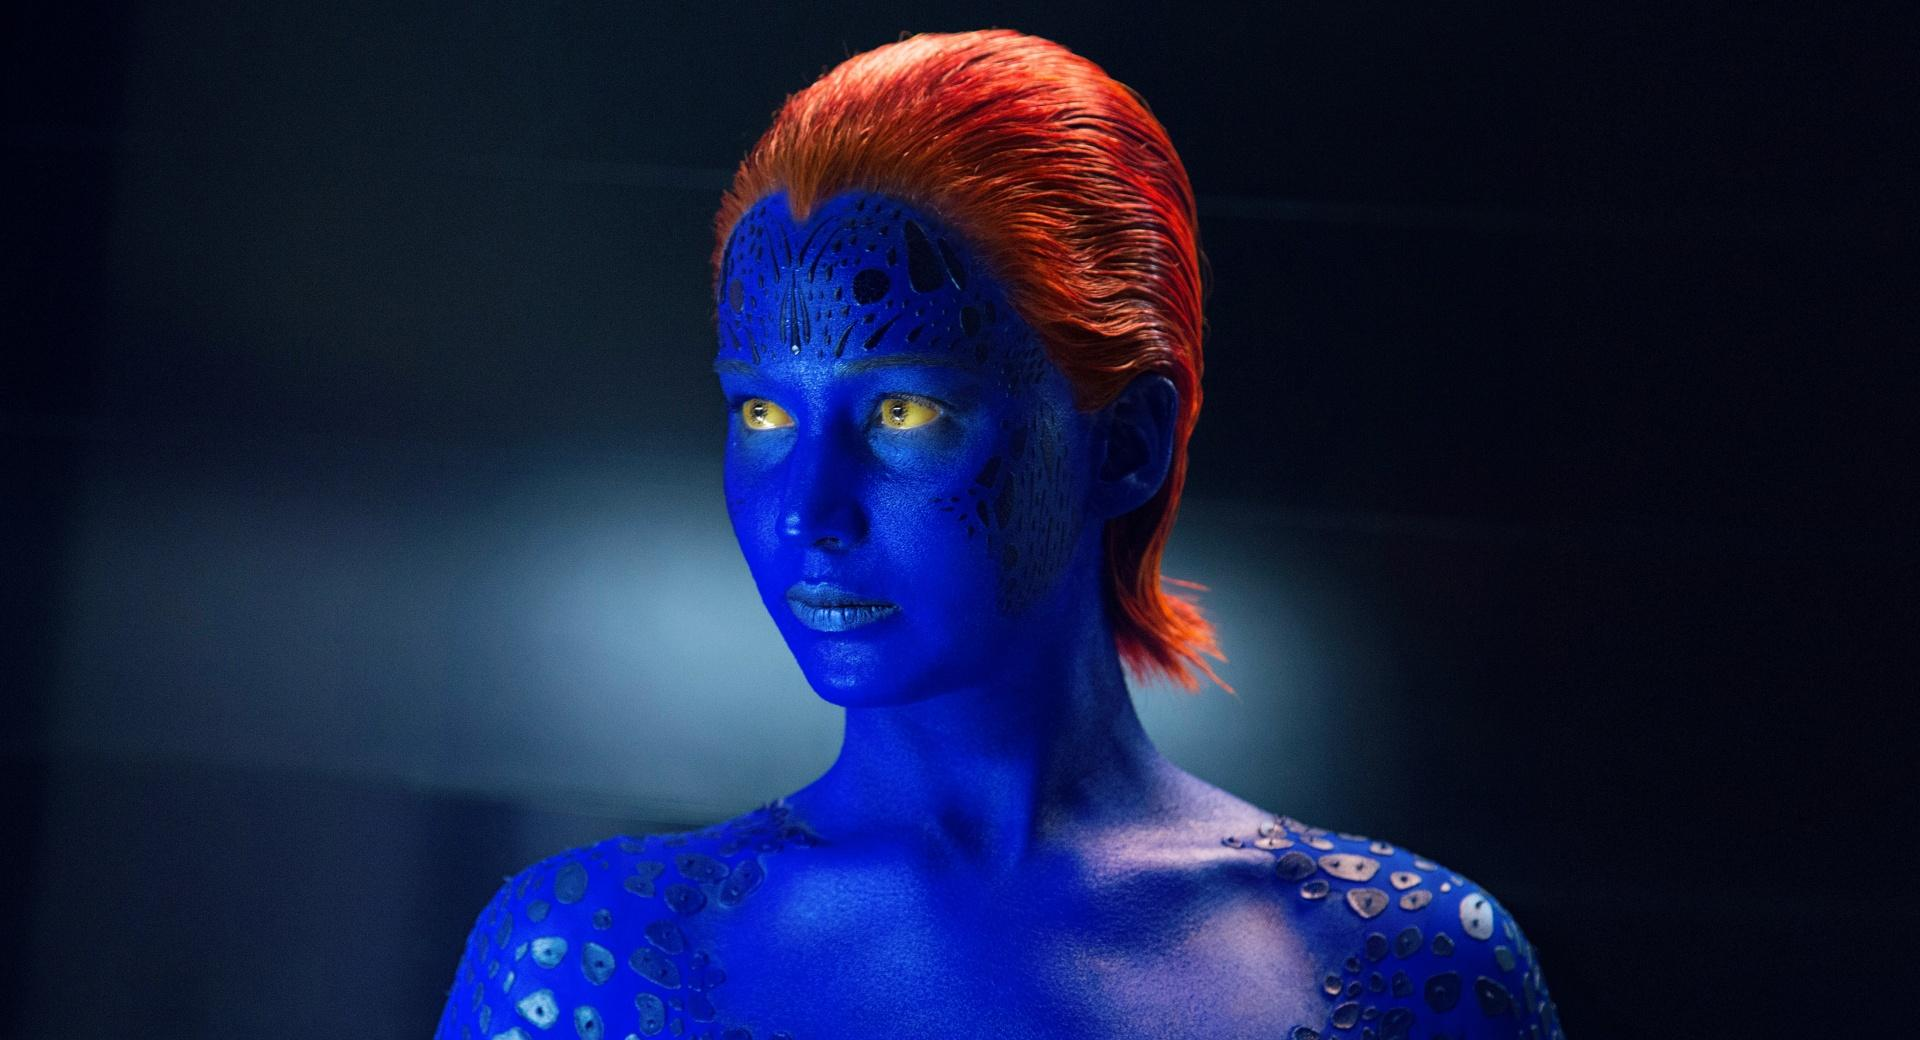 X-Men Days Of Future Past Mystique at 1280 x 960 size wallpapers HD quality